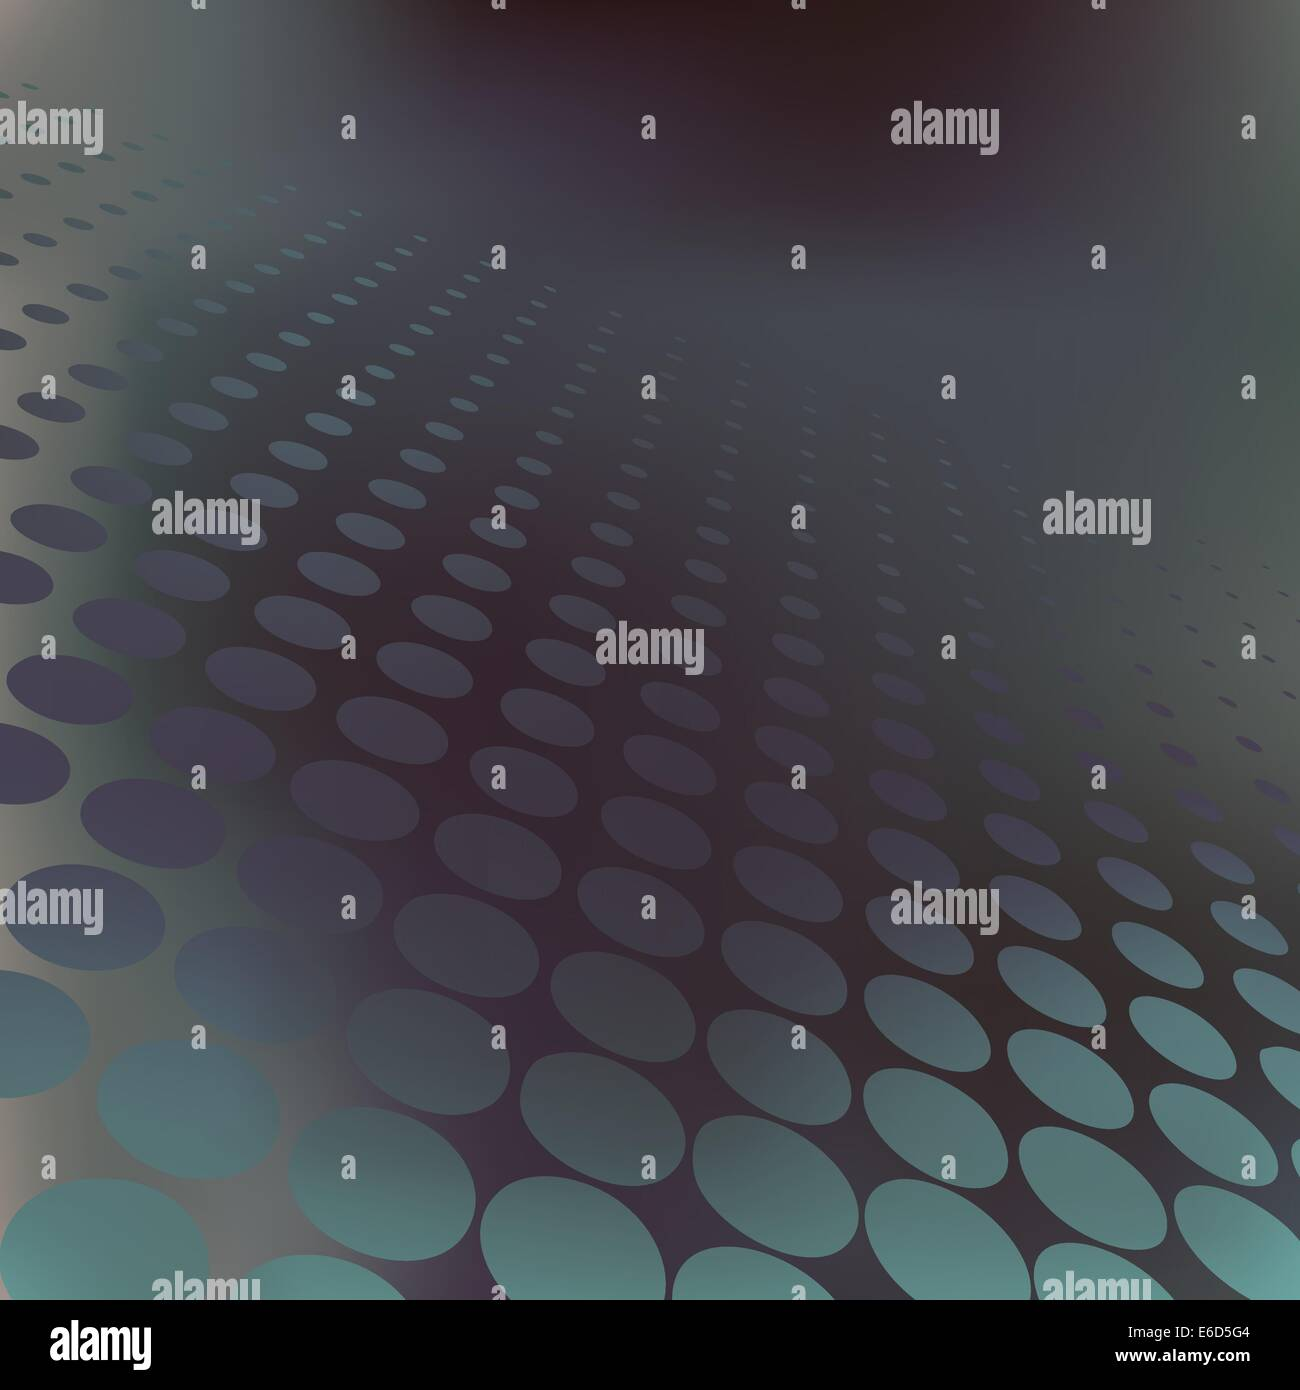 Abstract editable vector background of dark halftone dots - Stock Image